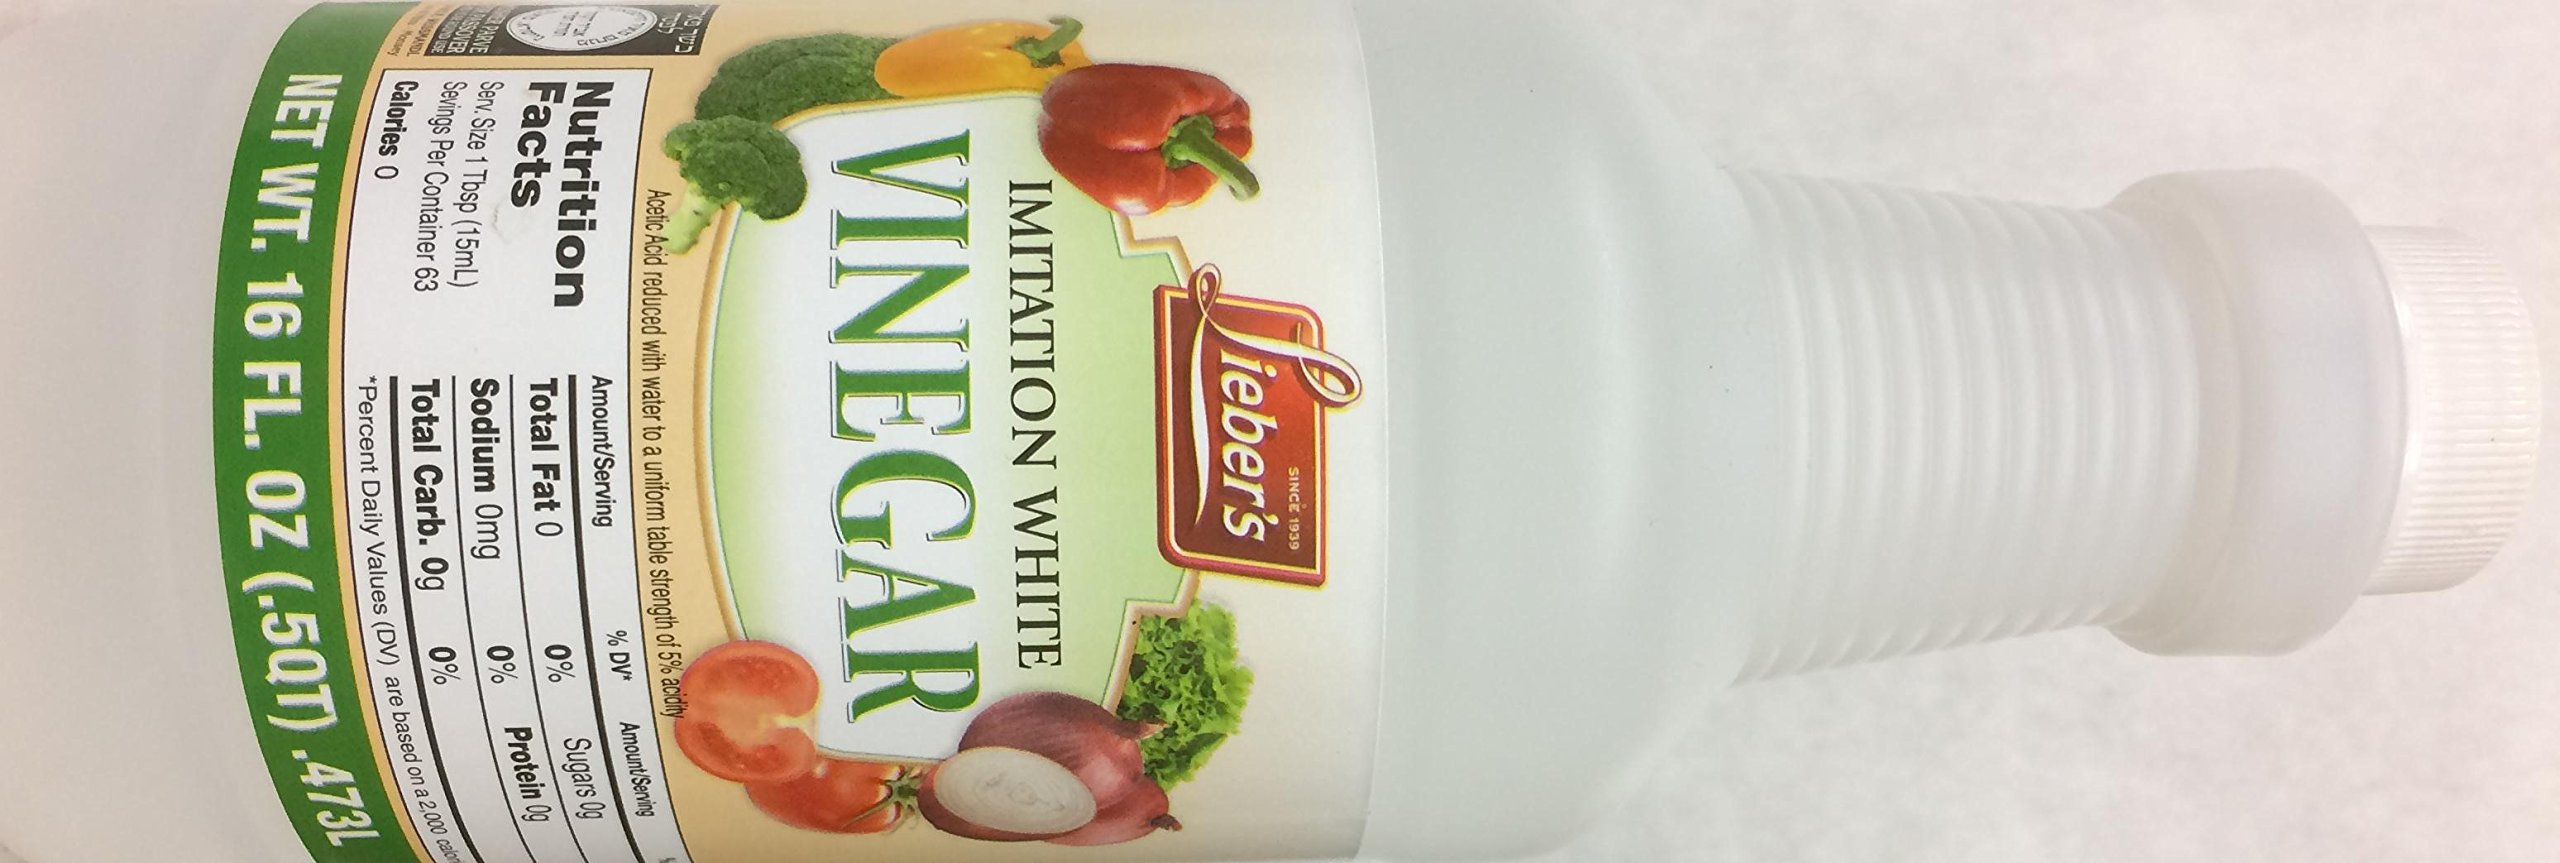 Lieber's Imitation Vinegar 16 Oz. Pack Of 3.